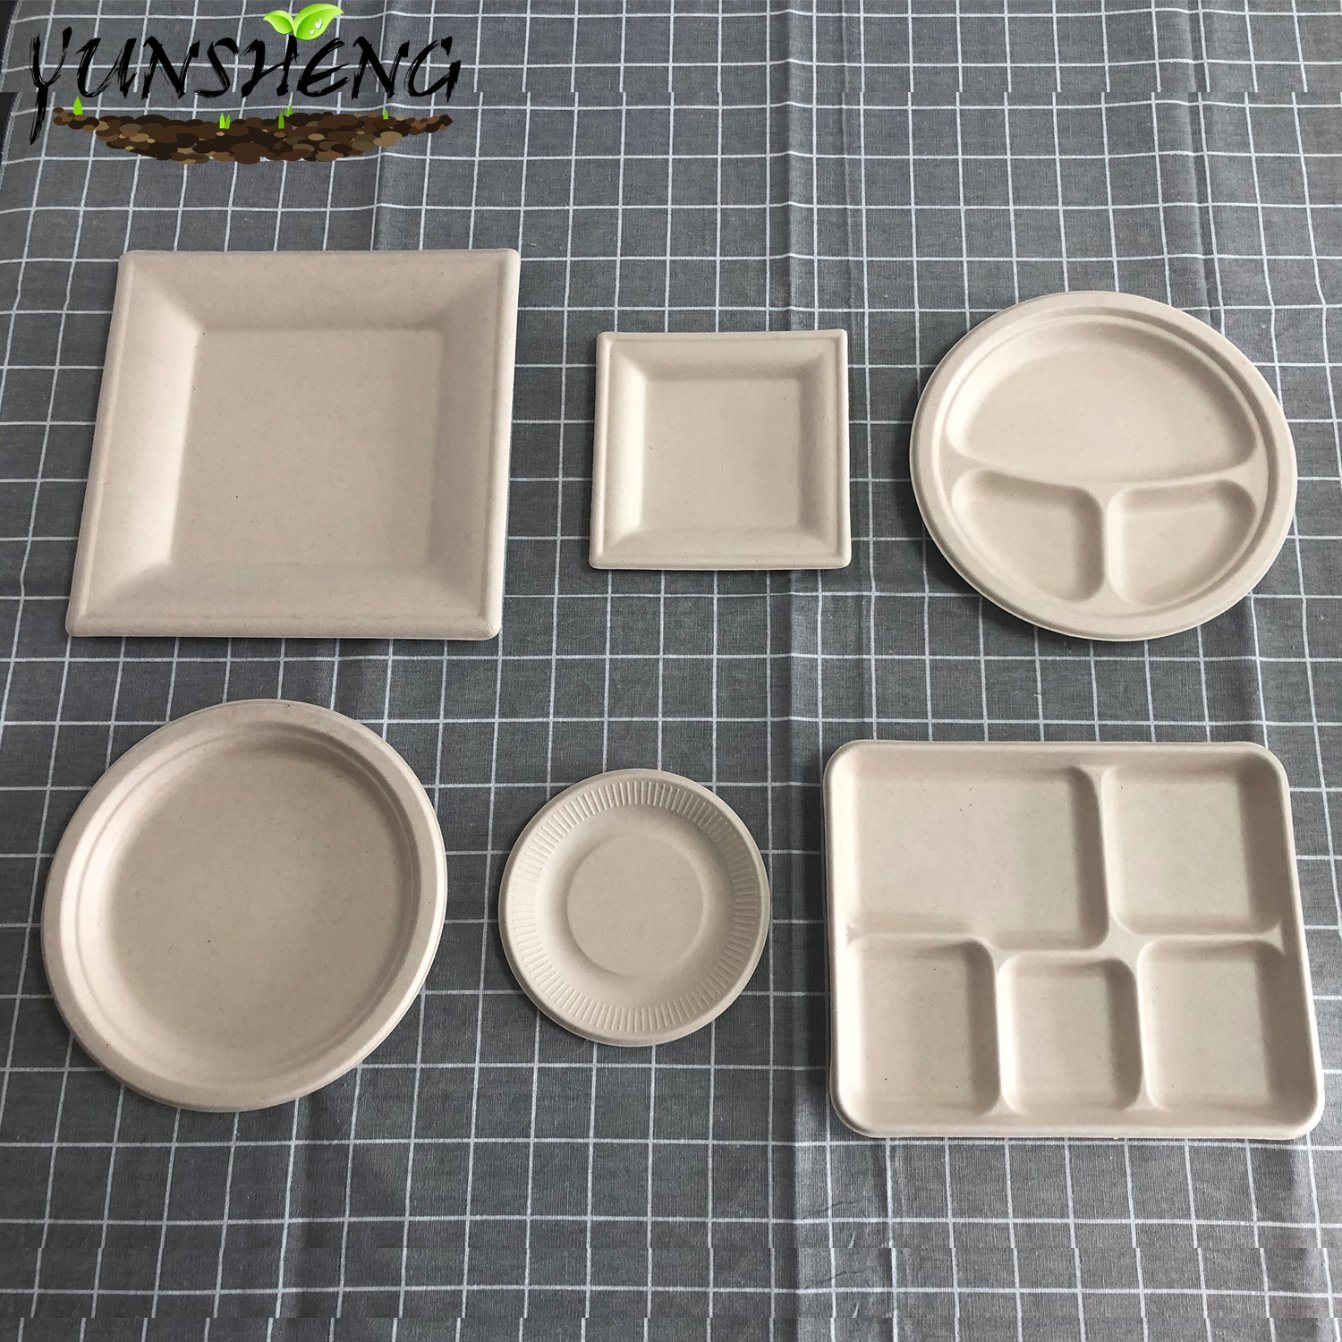 China Eco Friendly Biodegradable Dinner Party Wedding Lunch Dessert Paper Eating Food Holiday Bagasse Sugarcane Plates China Biodegradable Dinner Plates And Biodegradable Dessert Plates Price